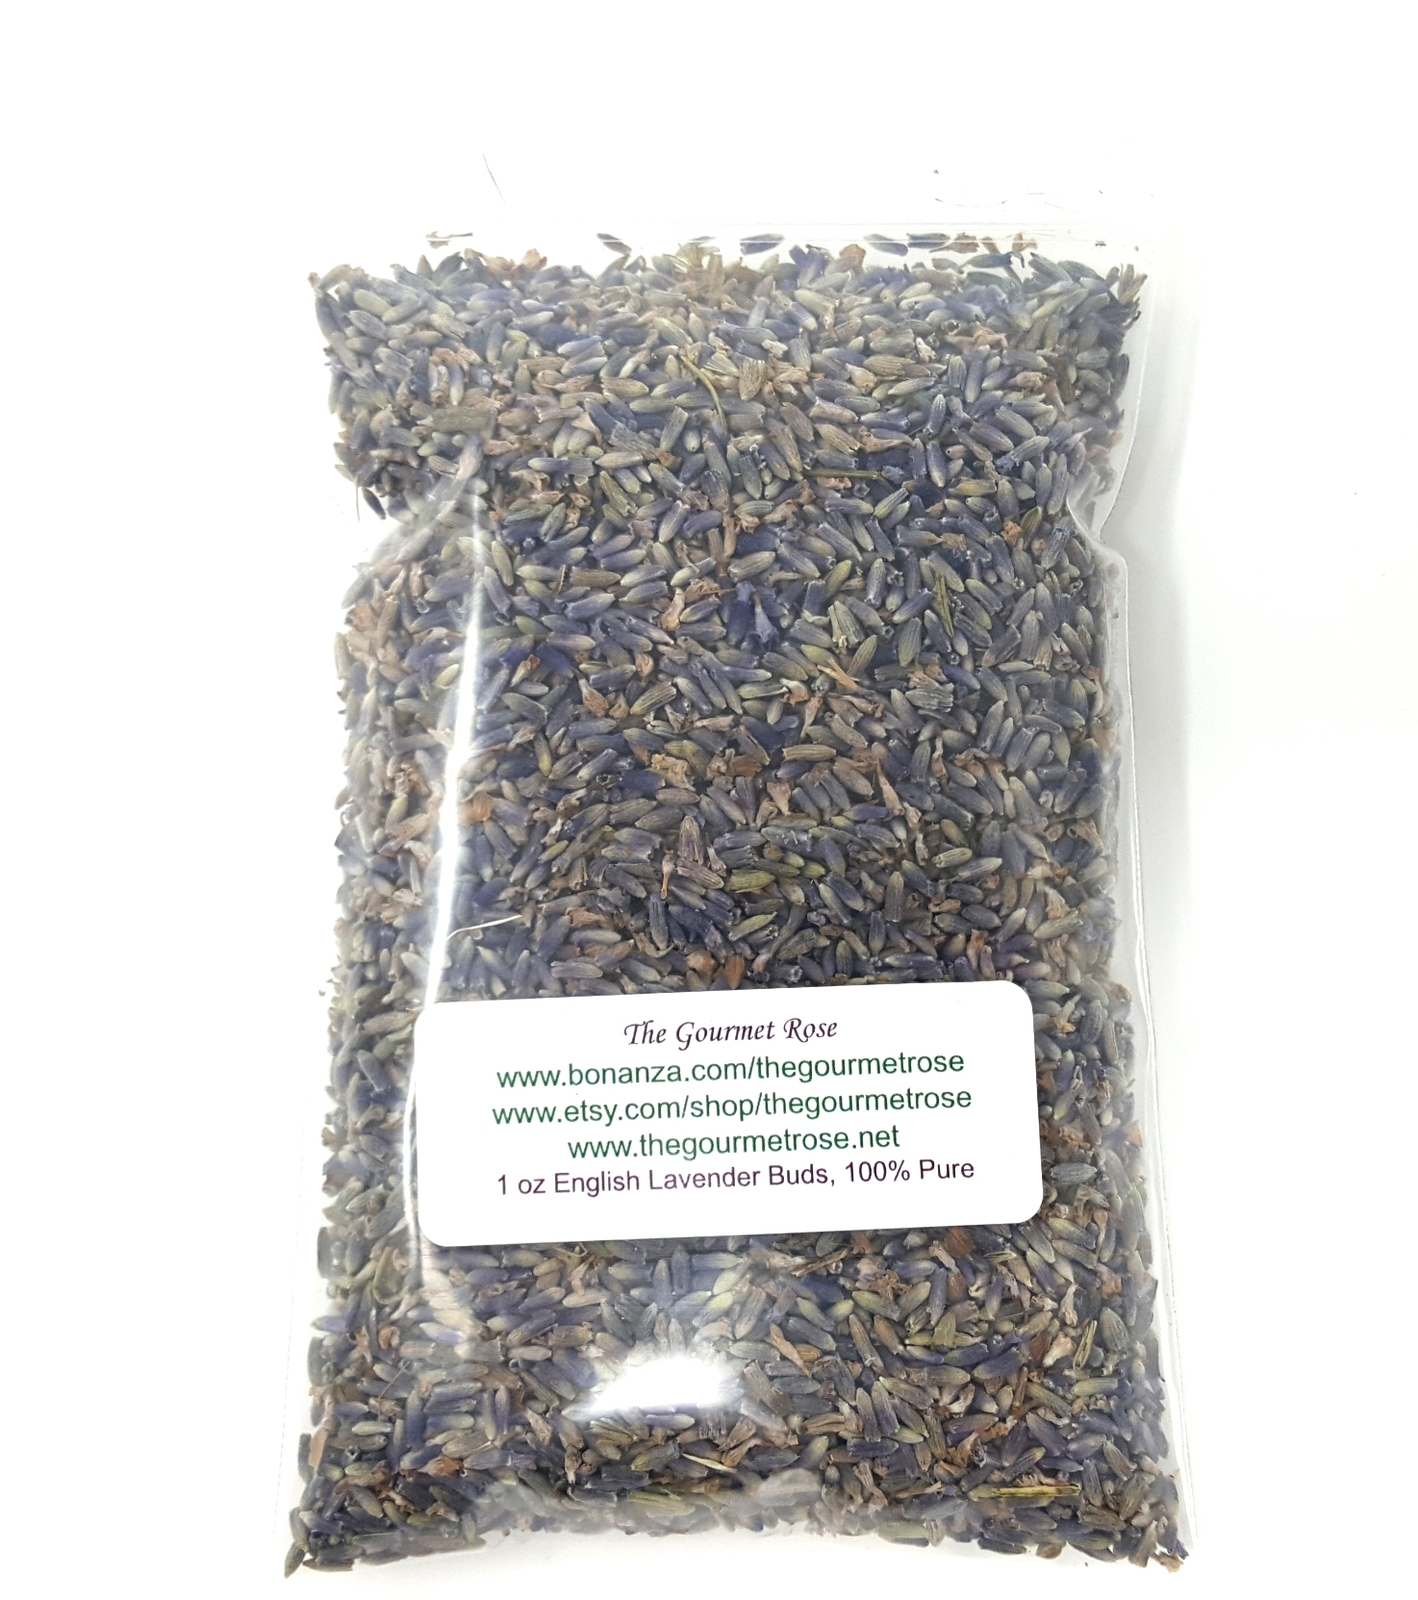 1 oz ENGLISH LAVENDER BUDS Dried Flowers Herbs Natural Herbal Tea Food Grade